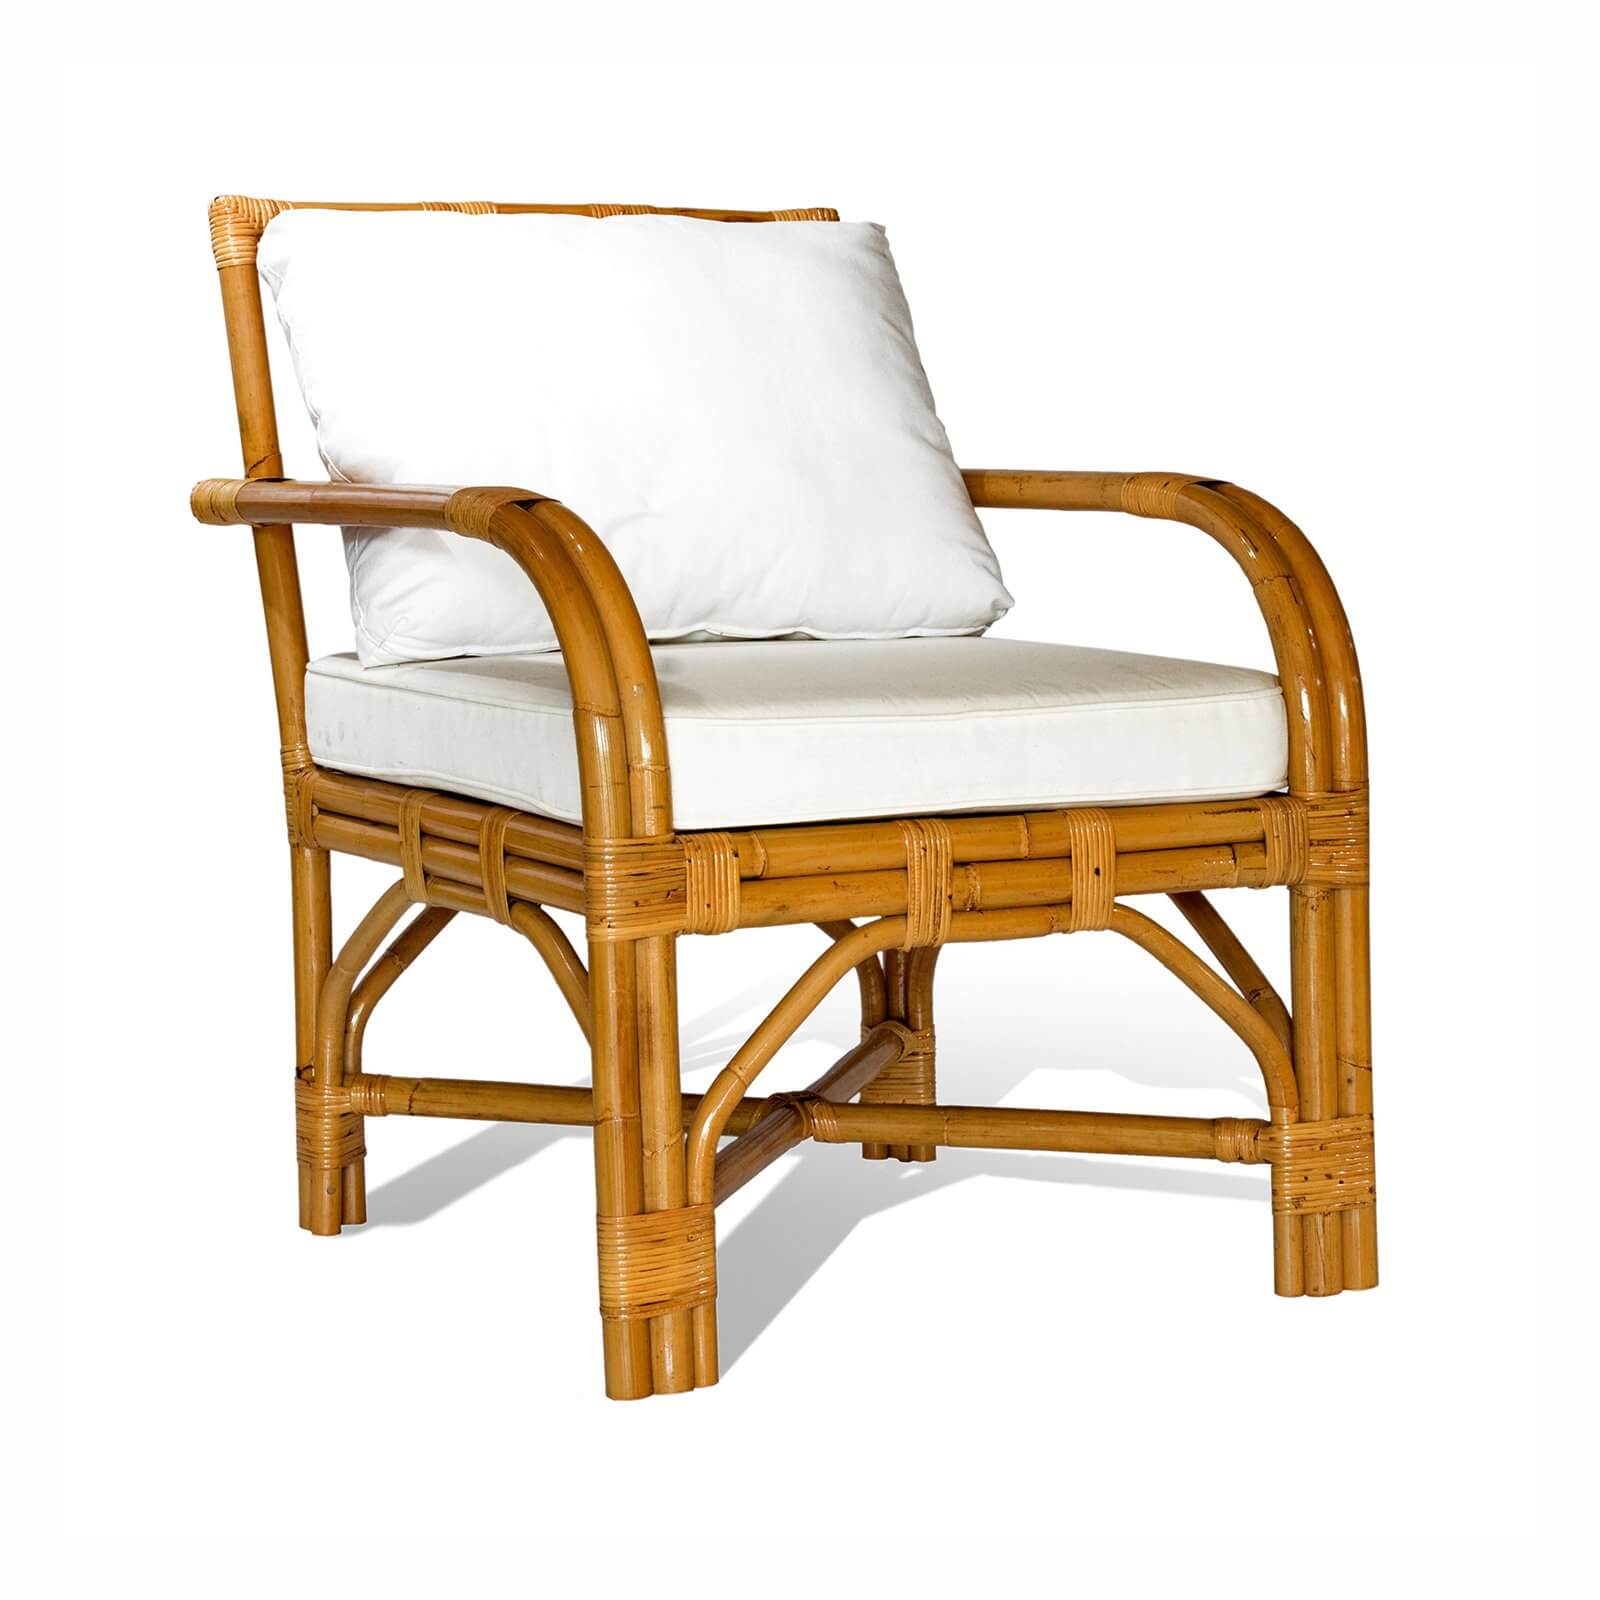 JAMAICA DINING CHAIR - STUART MEMBERY HOME COLLECTION